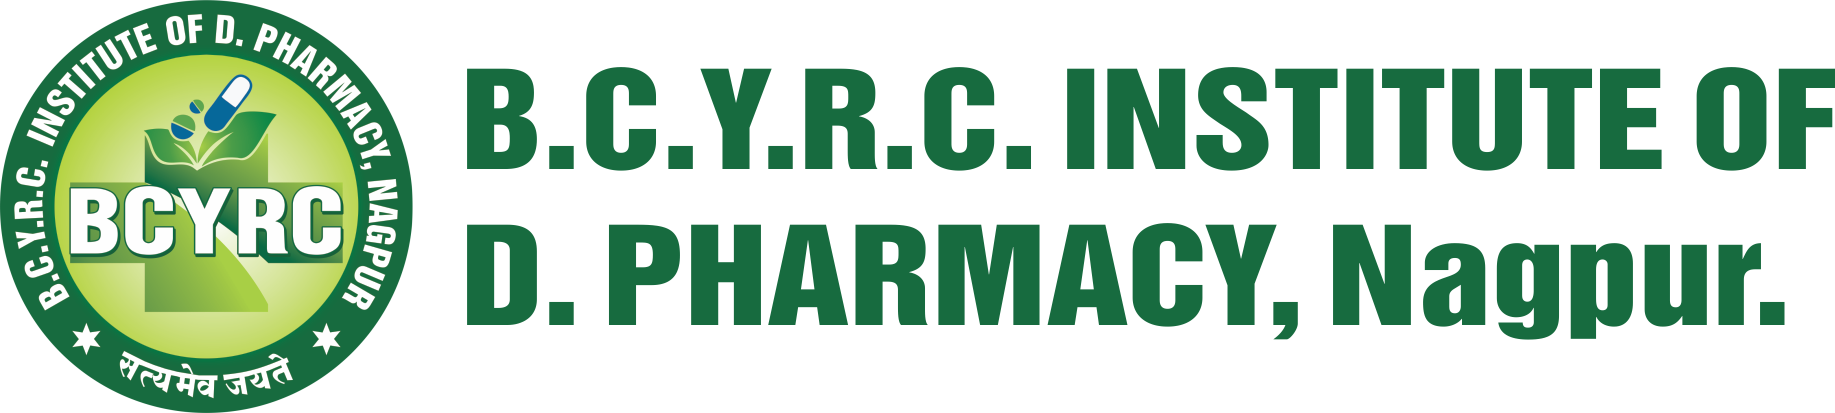 BCYRCS Institute of Diploma in Pharmacy